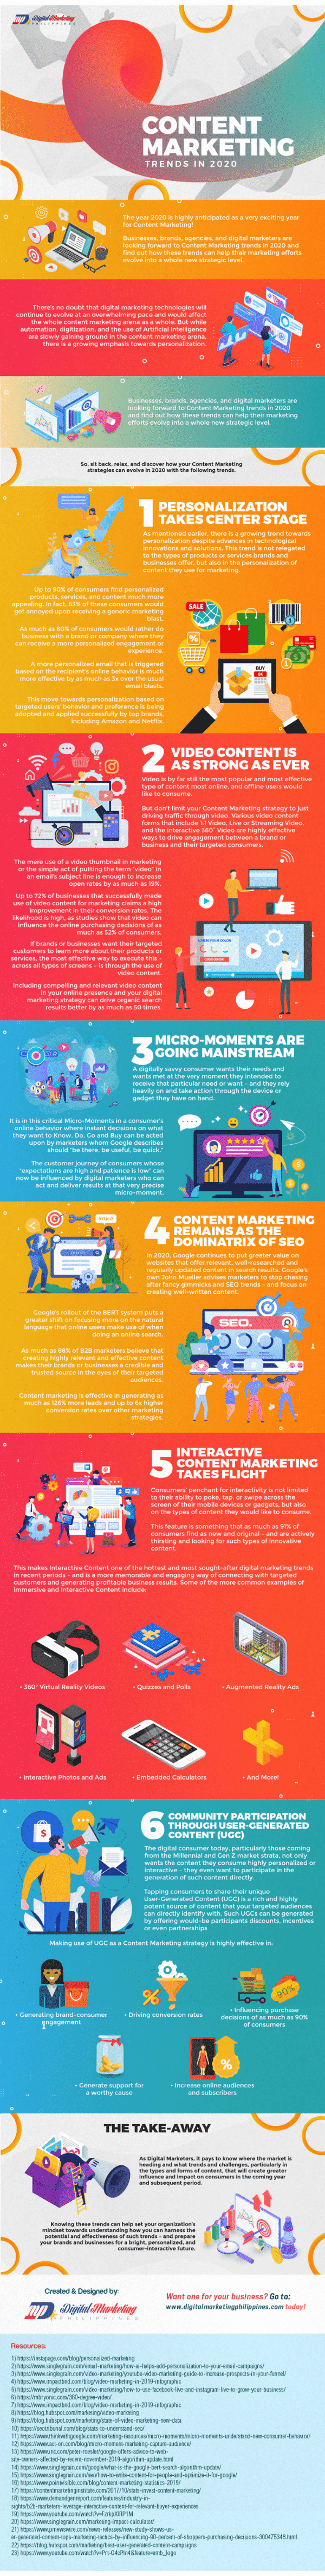 Learn more about the world of content marketing and how these trends will shape 2020 in this great infographic!